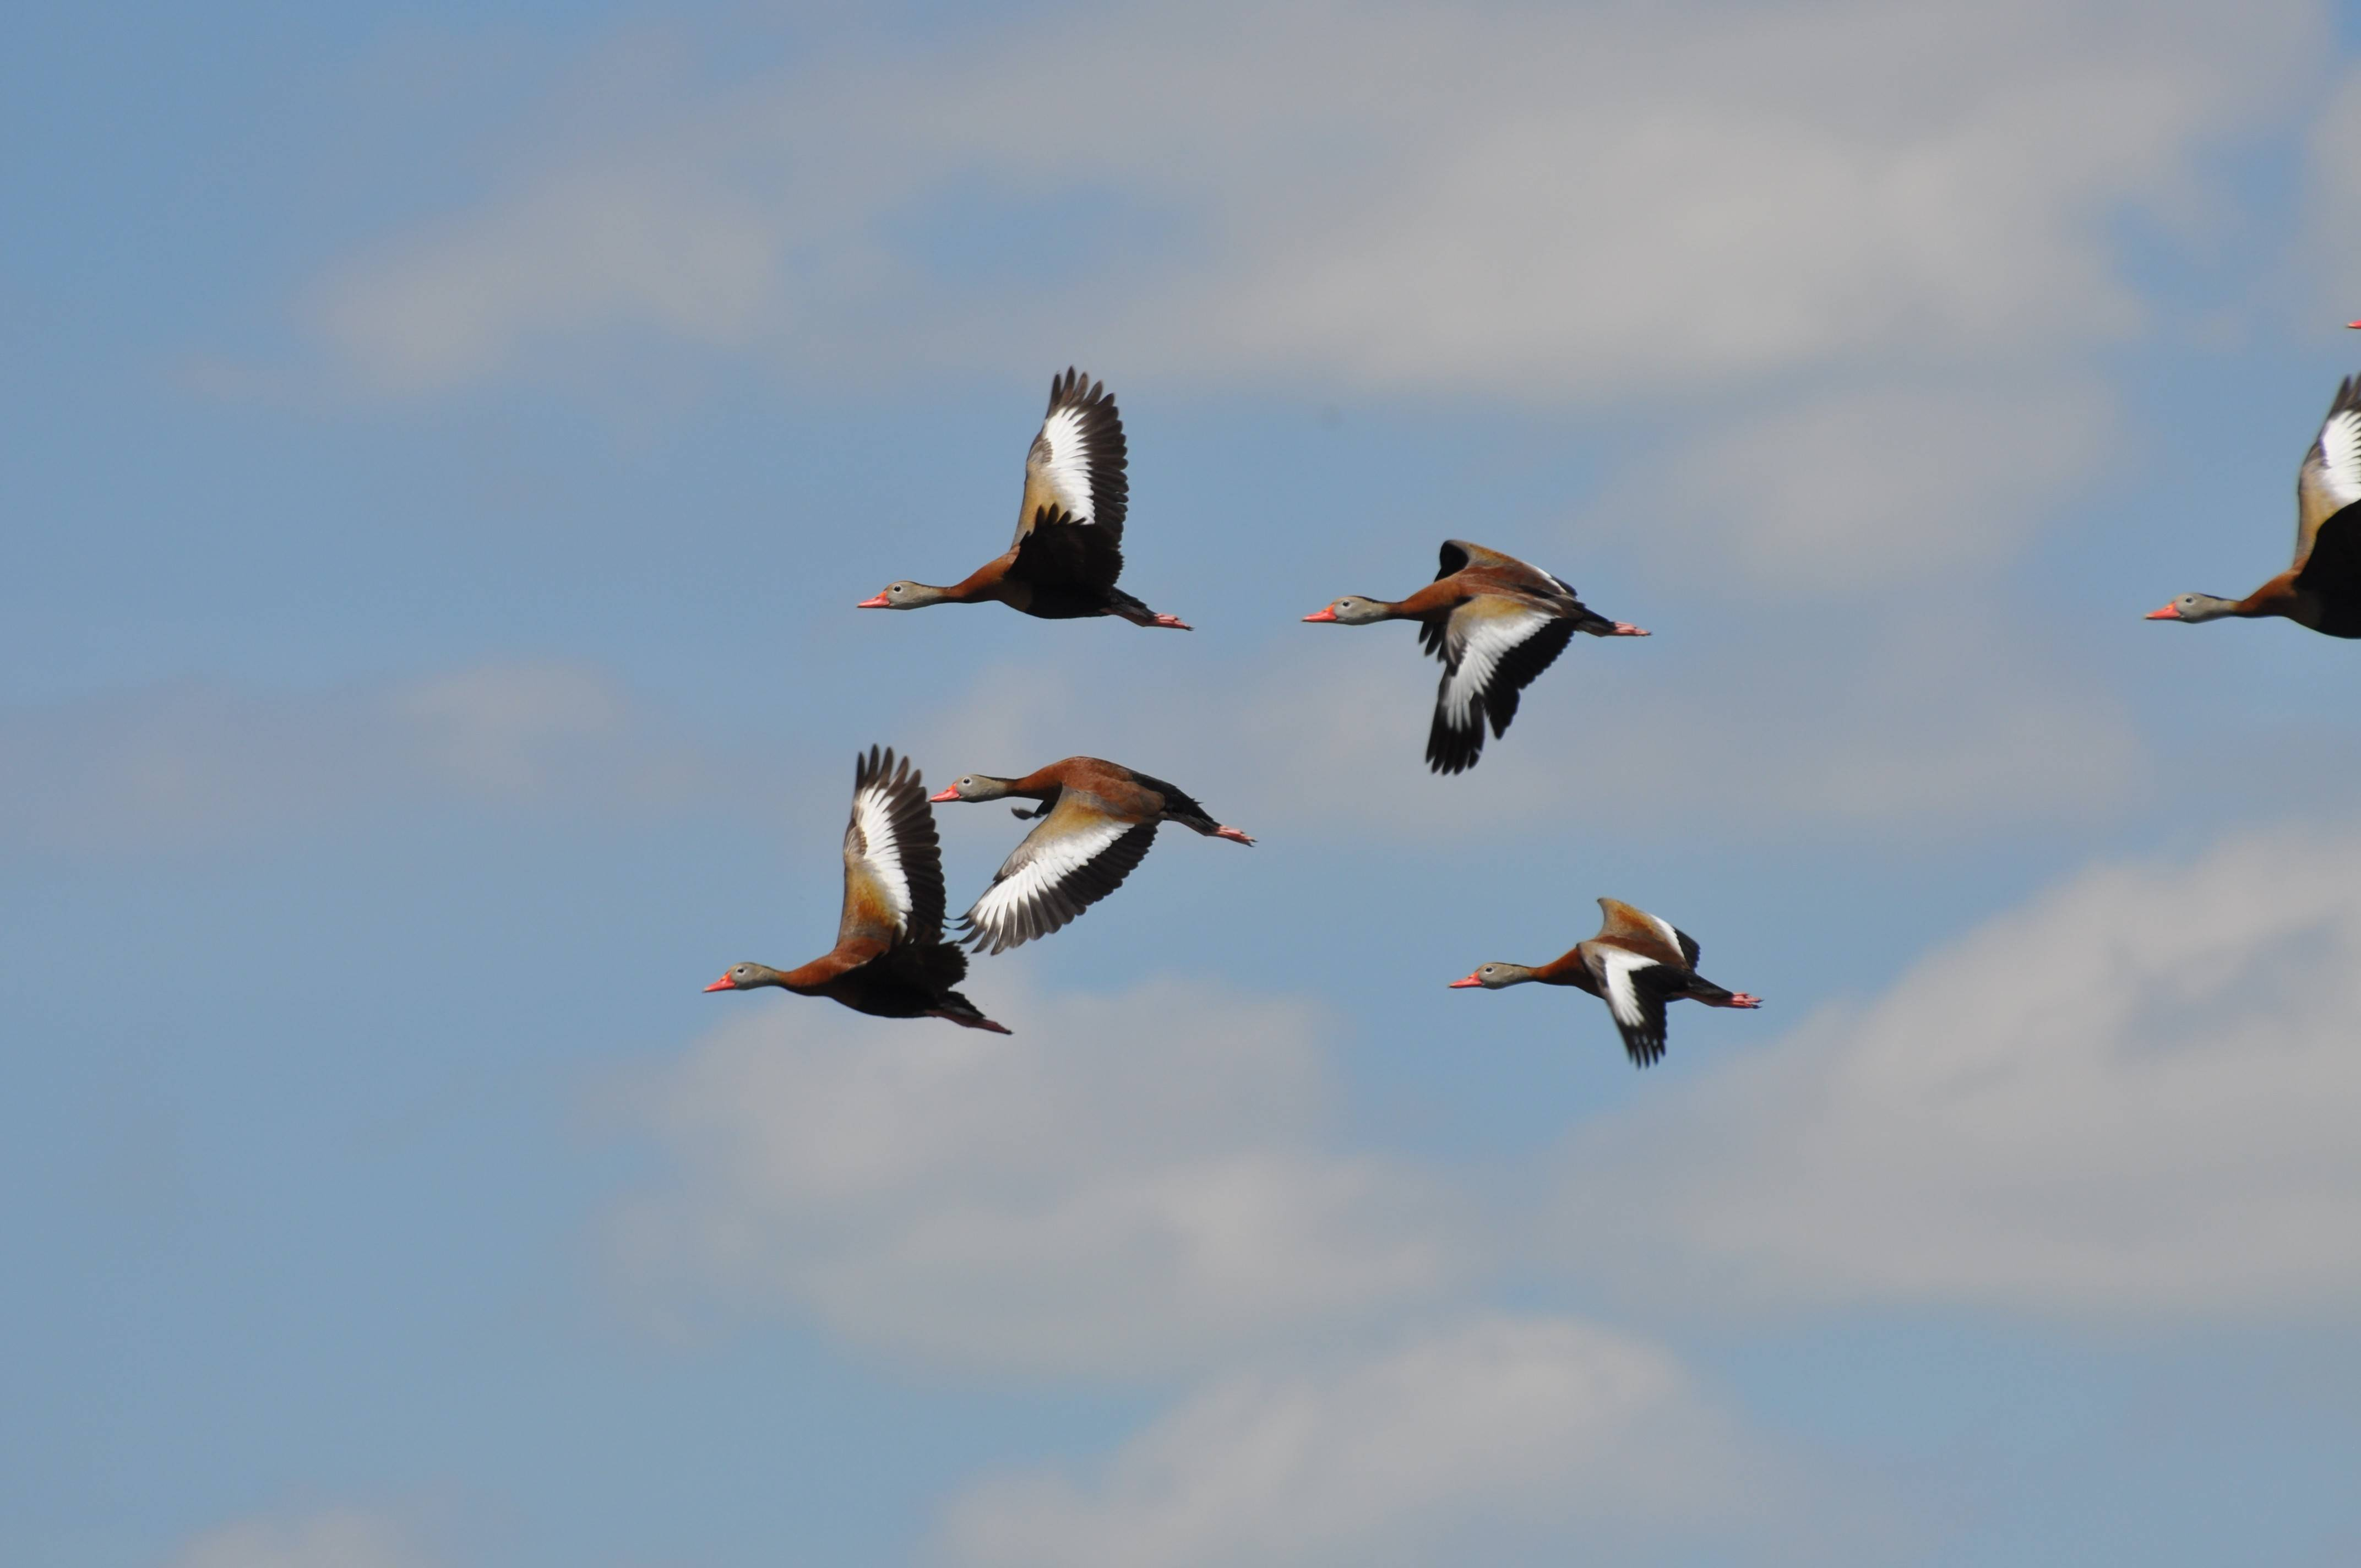 Usually seen in flocks, black-bellied whistling ducks are both dazzling and noisy when in flight.